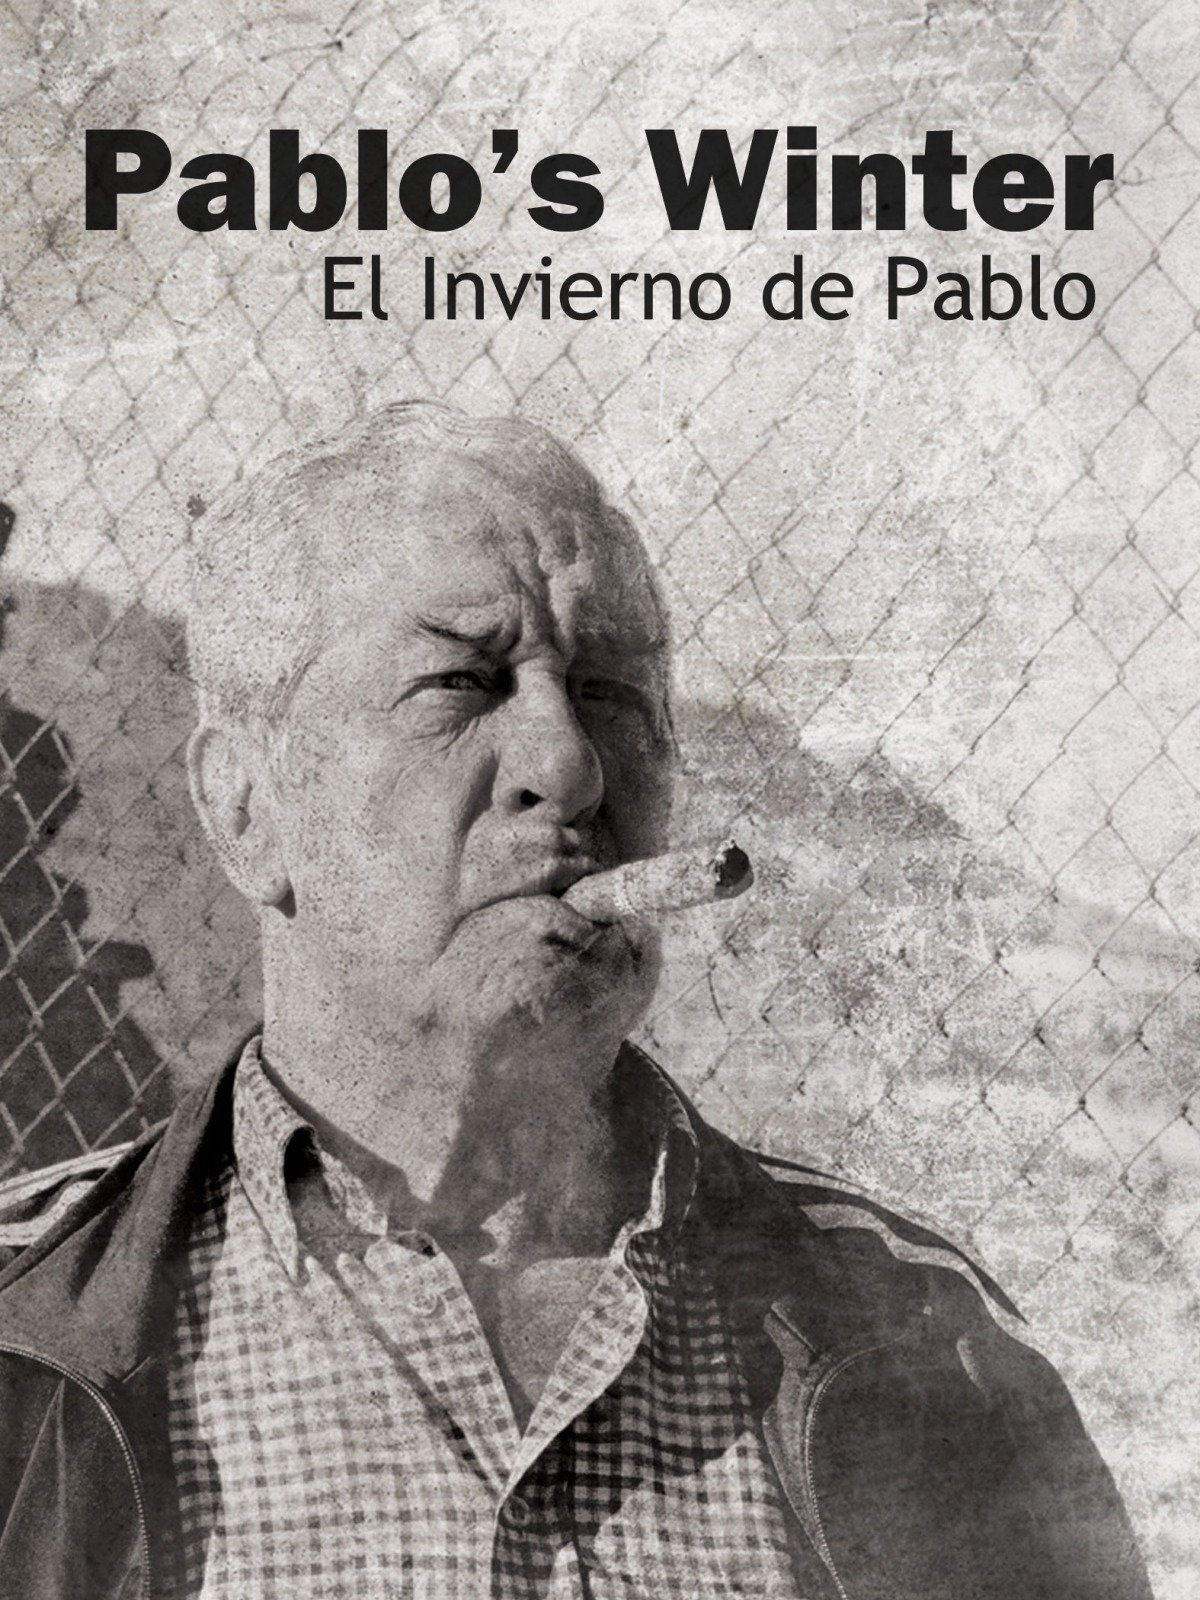 Pablo's Winter (English Subtitled)